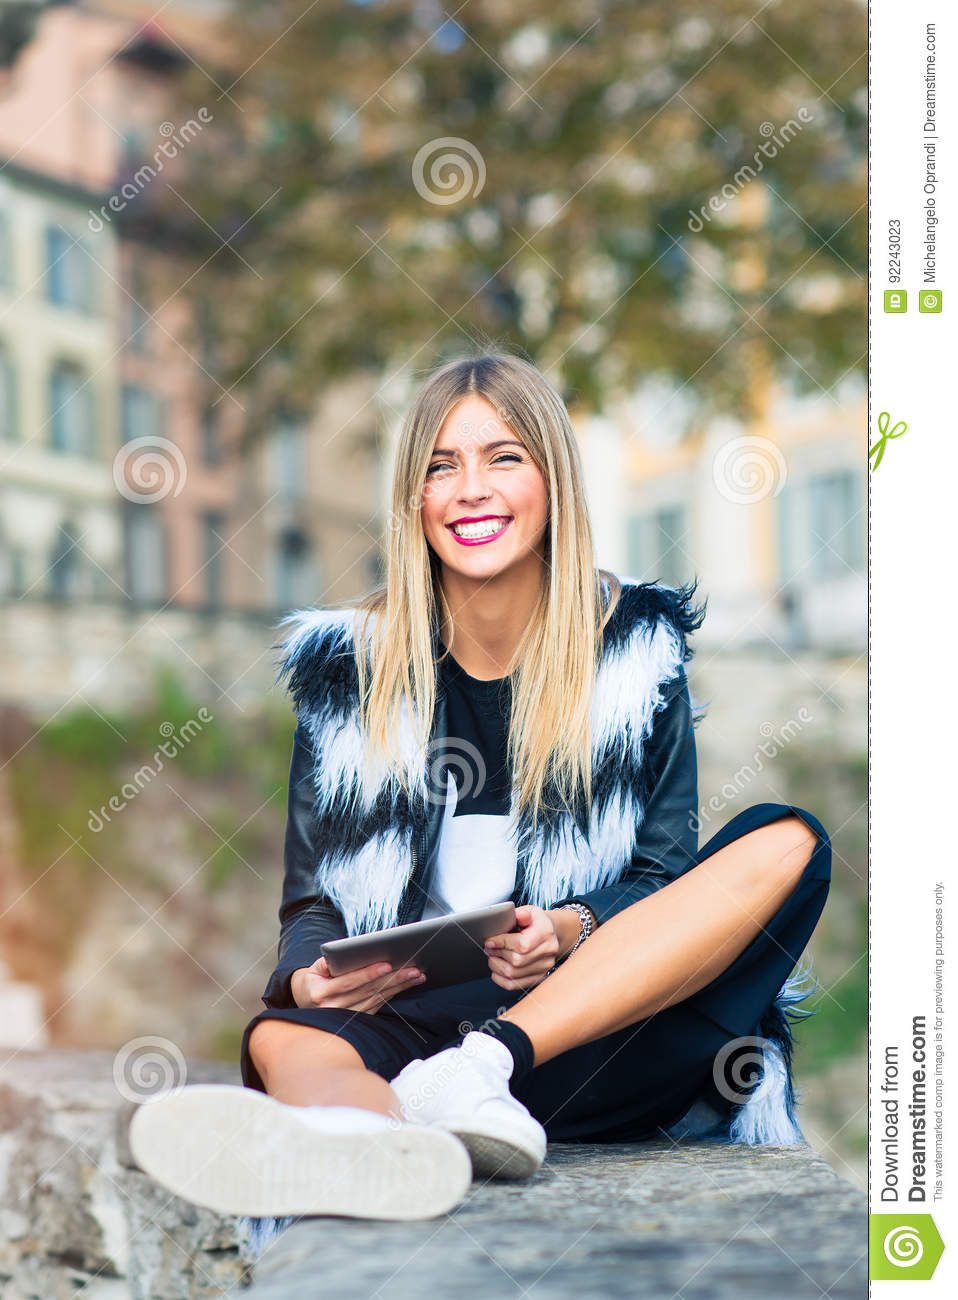 Beautiful blond girl with a big big smile and tablet in hand